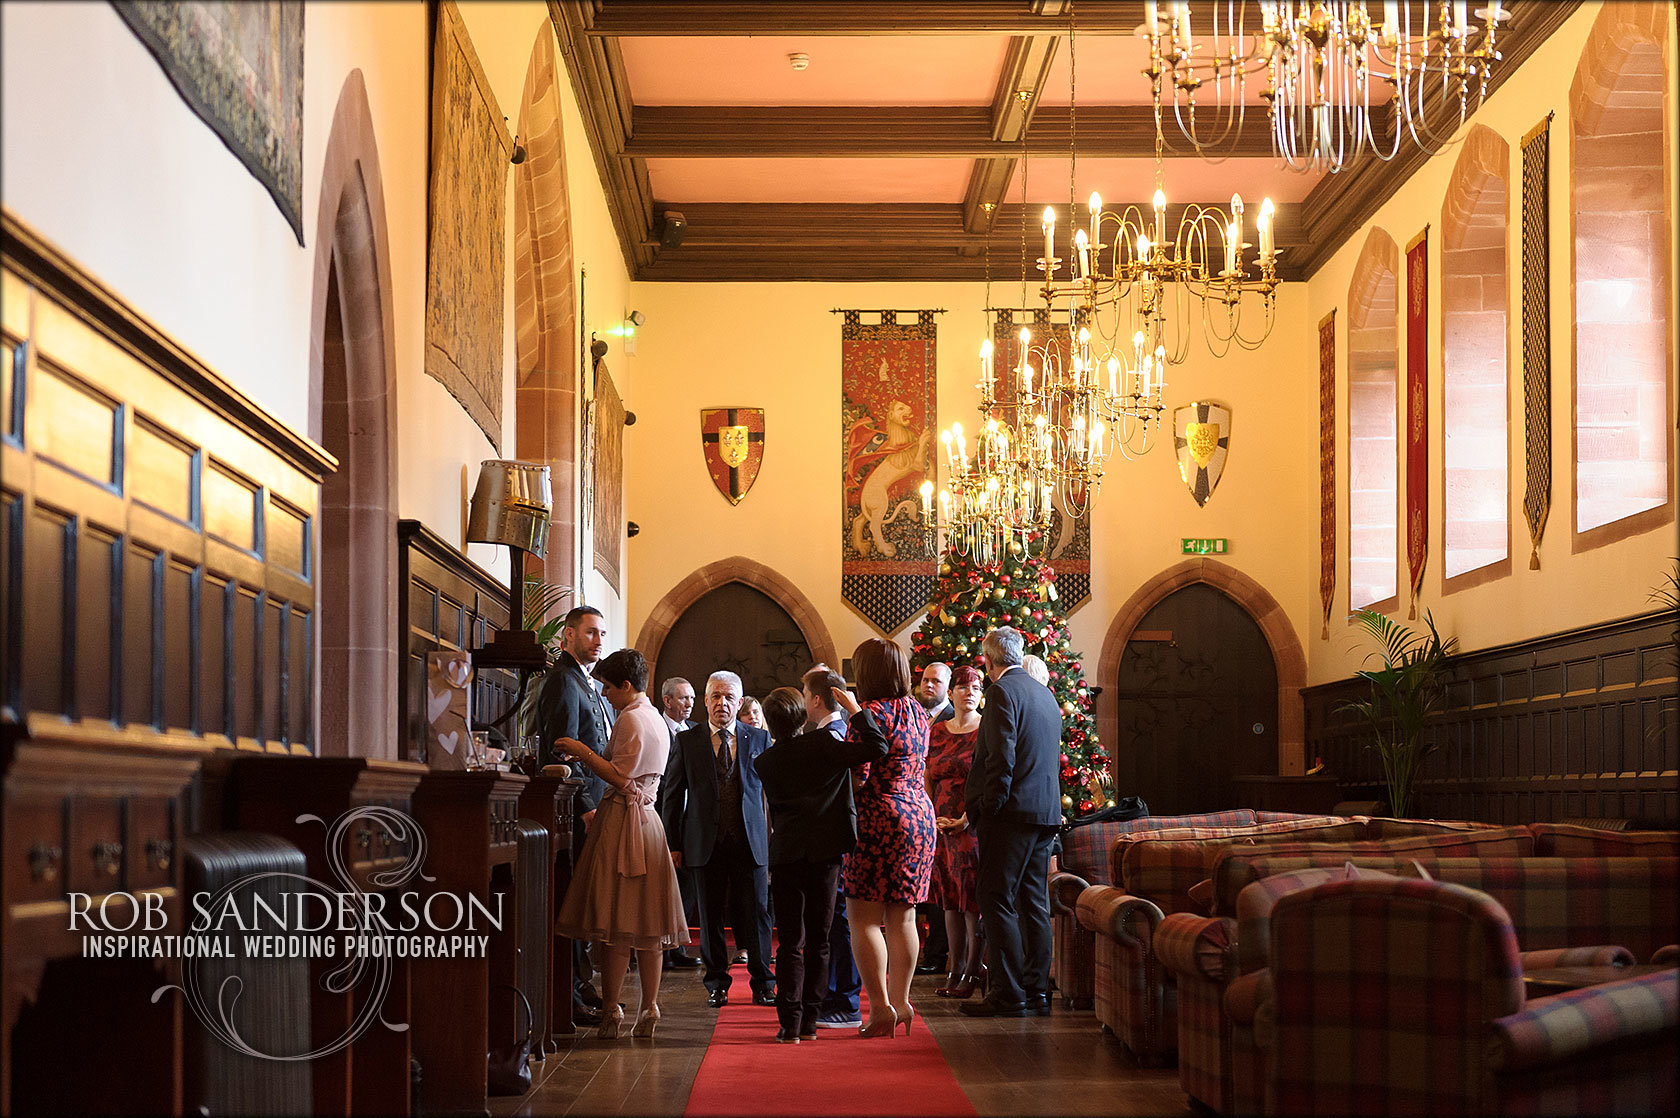 Peckforton Castle wedding images by Rob Sanderson Photography